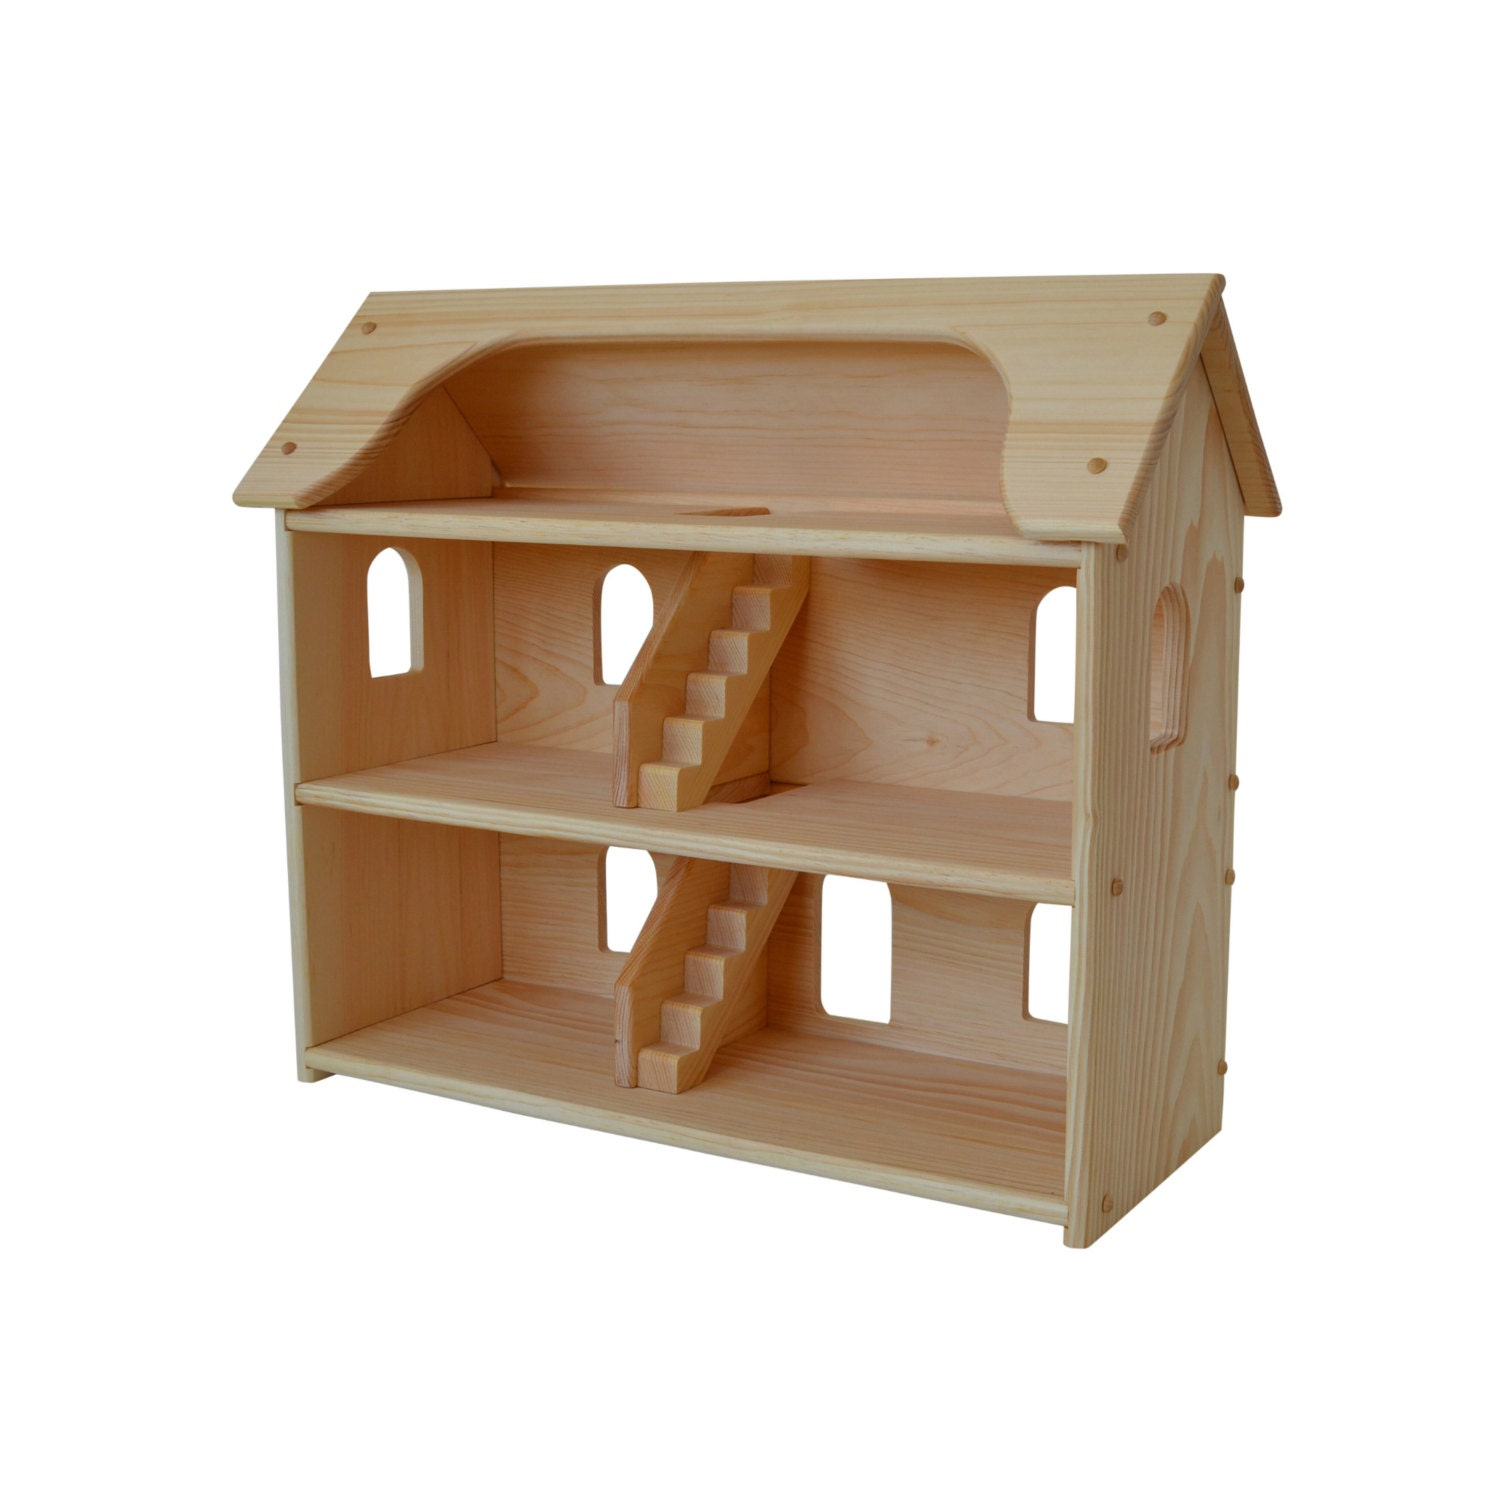 Handcrafted Natural Wooden Toy Dollhouse-Waldorf